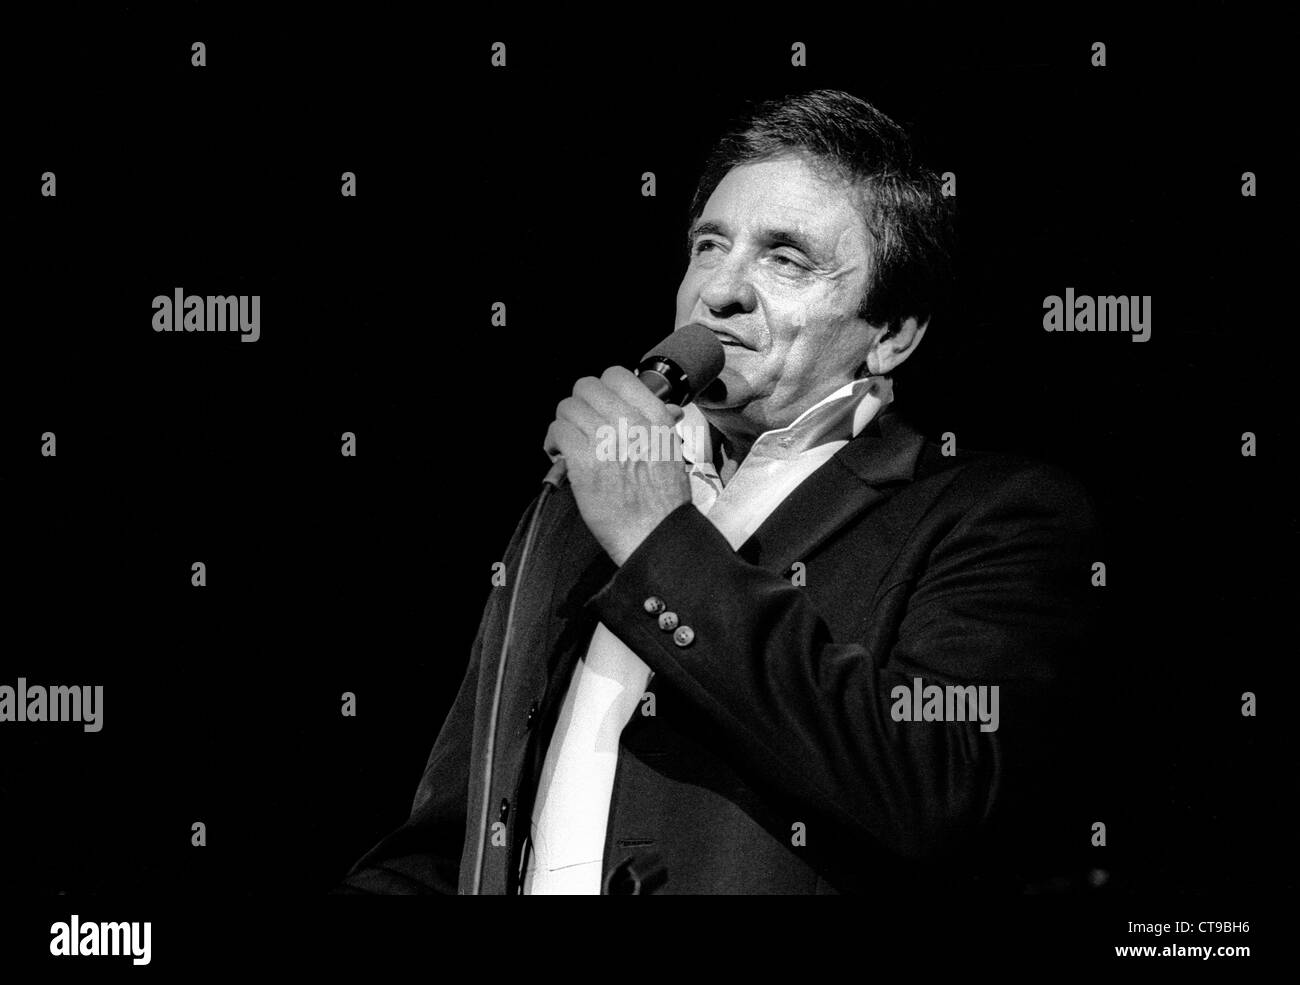 Johnny Cash Pool Song Johnny Cash Black And White Stock Photos Images Alamy